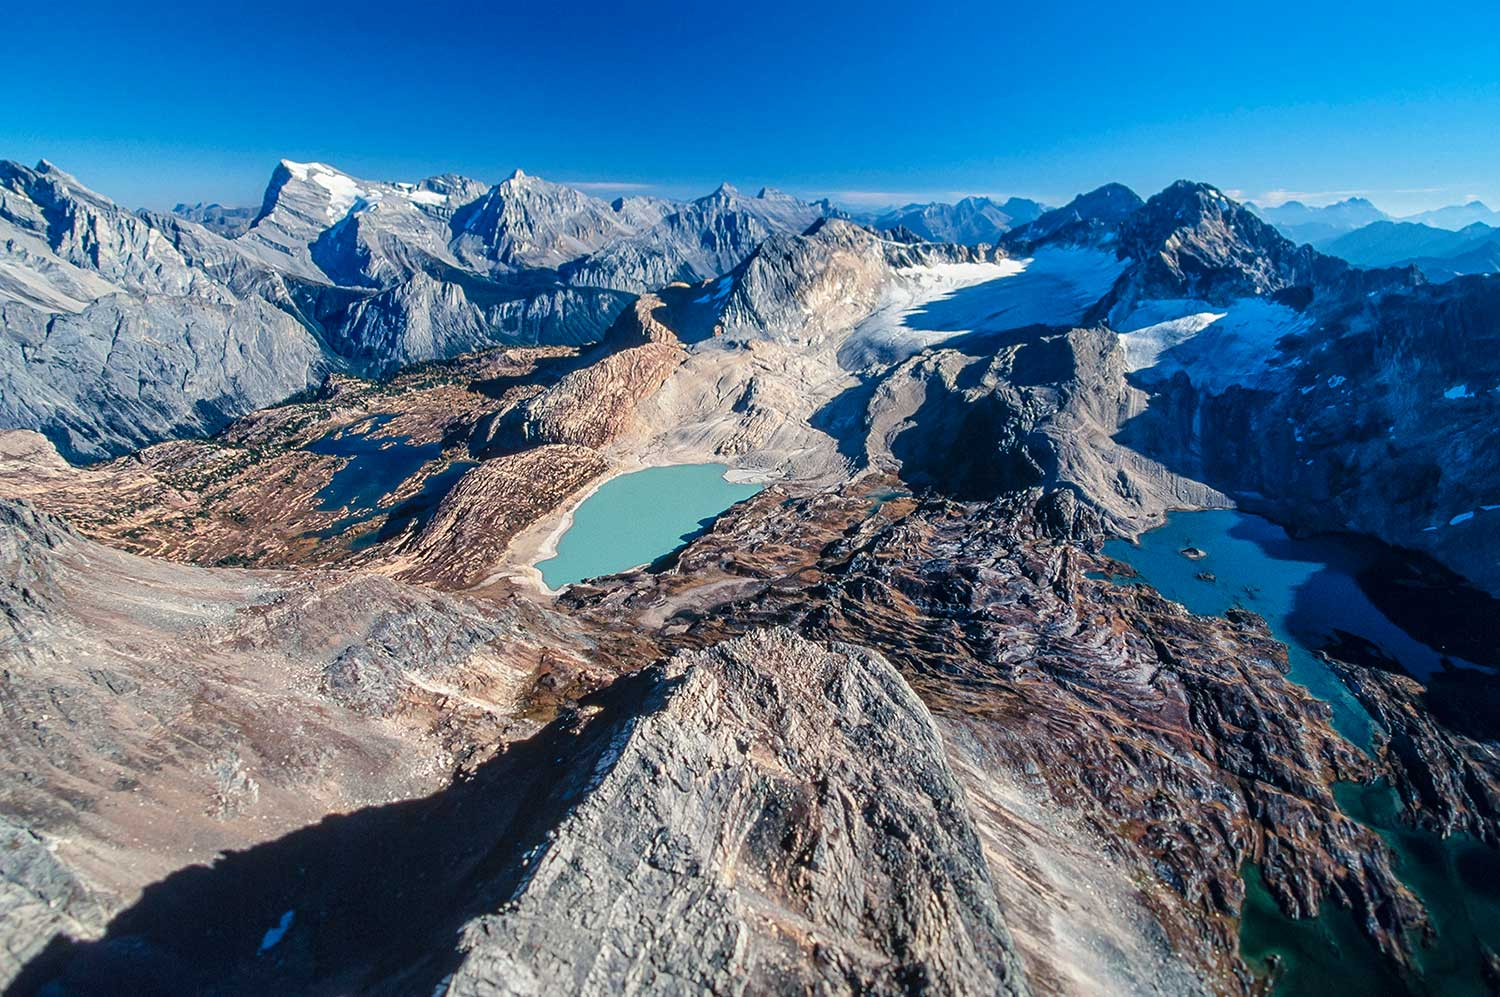 Aerial photo of the Height of the Rockies Provincial Park, BC